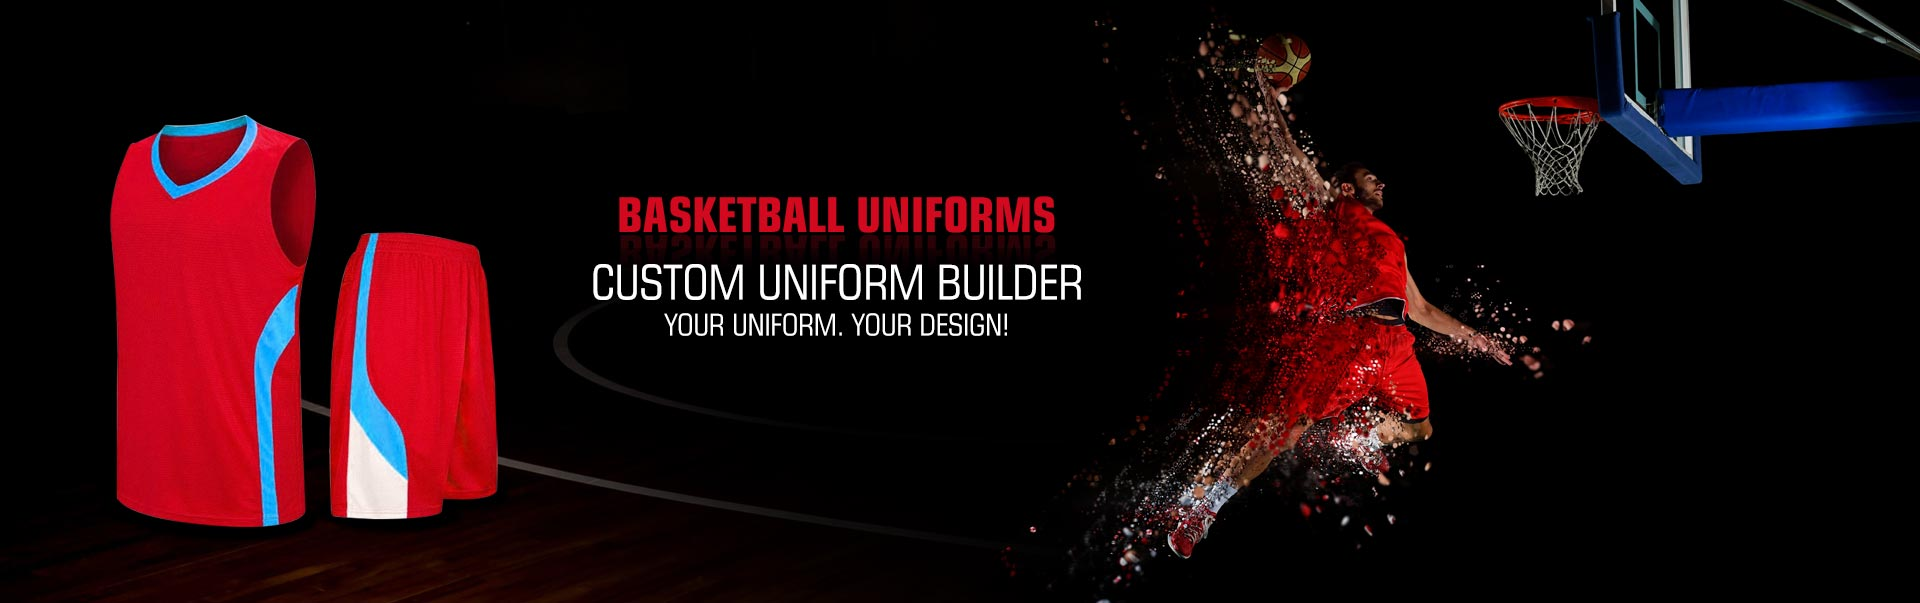 Basketball Uniforms Wholesaler, Suppliers in Senneterre